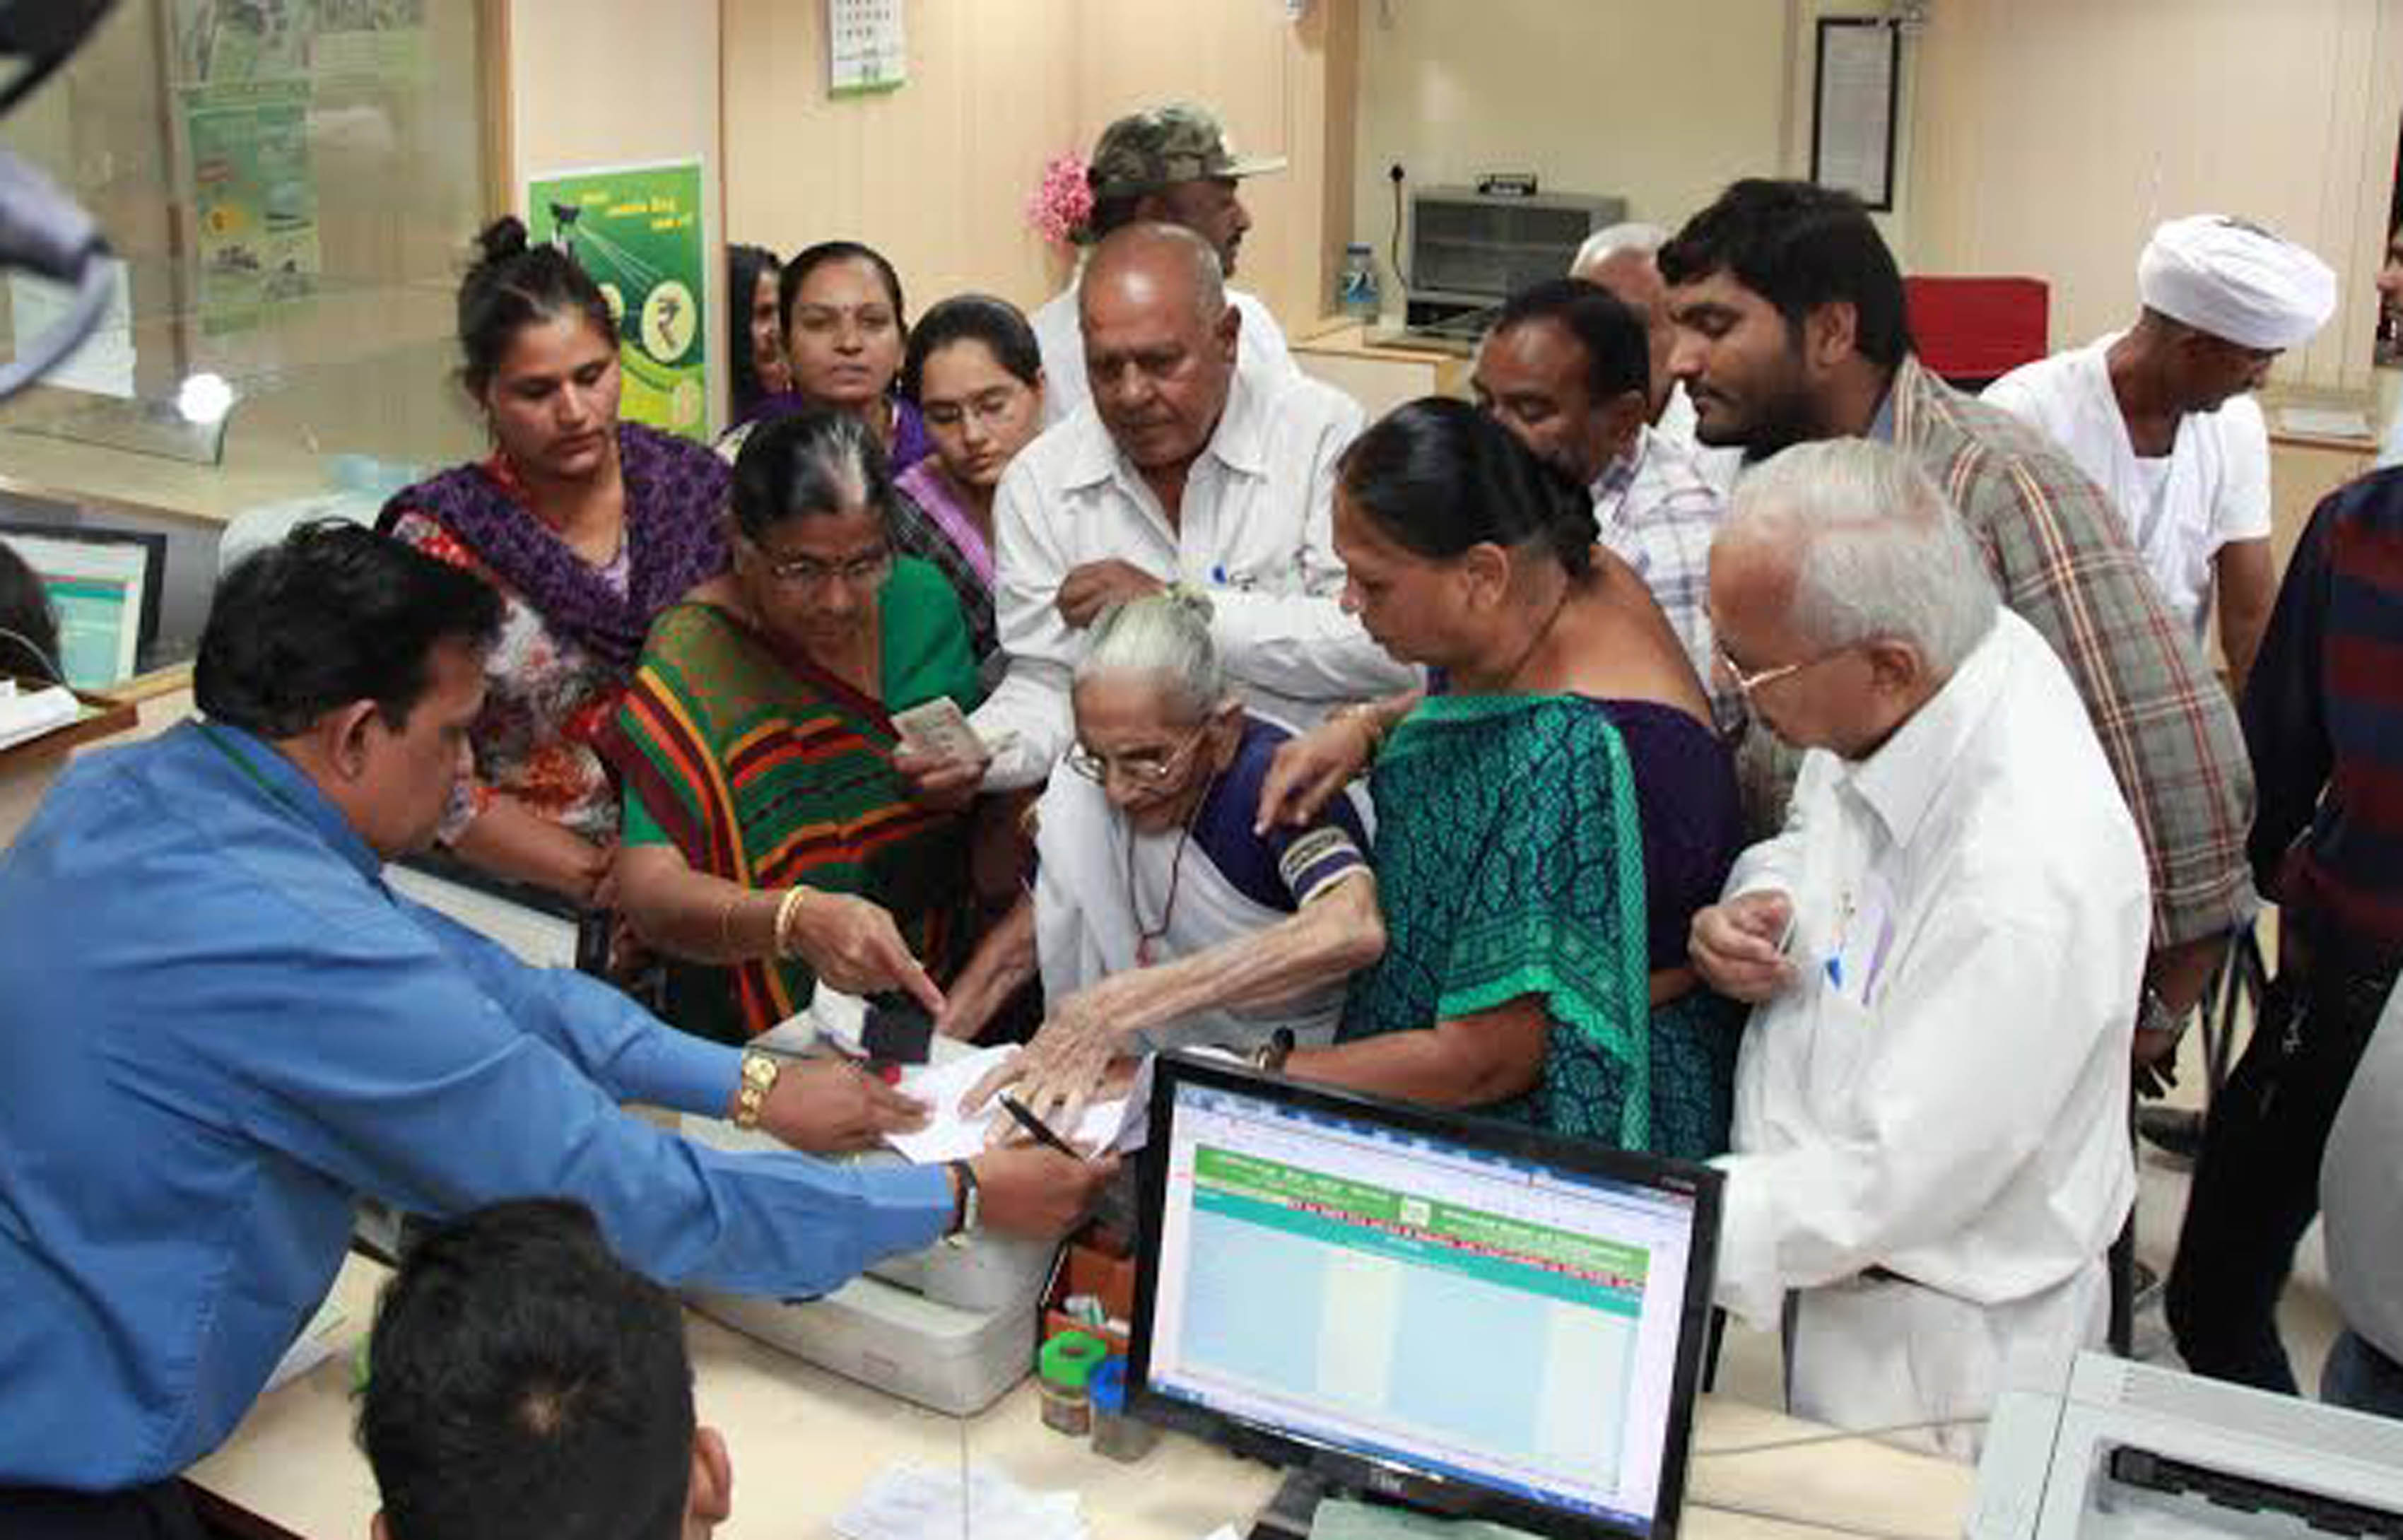 Hiraba, Prime Minister Narendra Modi's mother, went to the bank to exchange the demonetized currency at Raysan near Gandhinagar. Express Photo by Javed Raja. 15.11.2016.